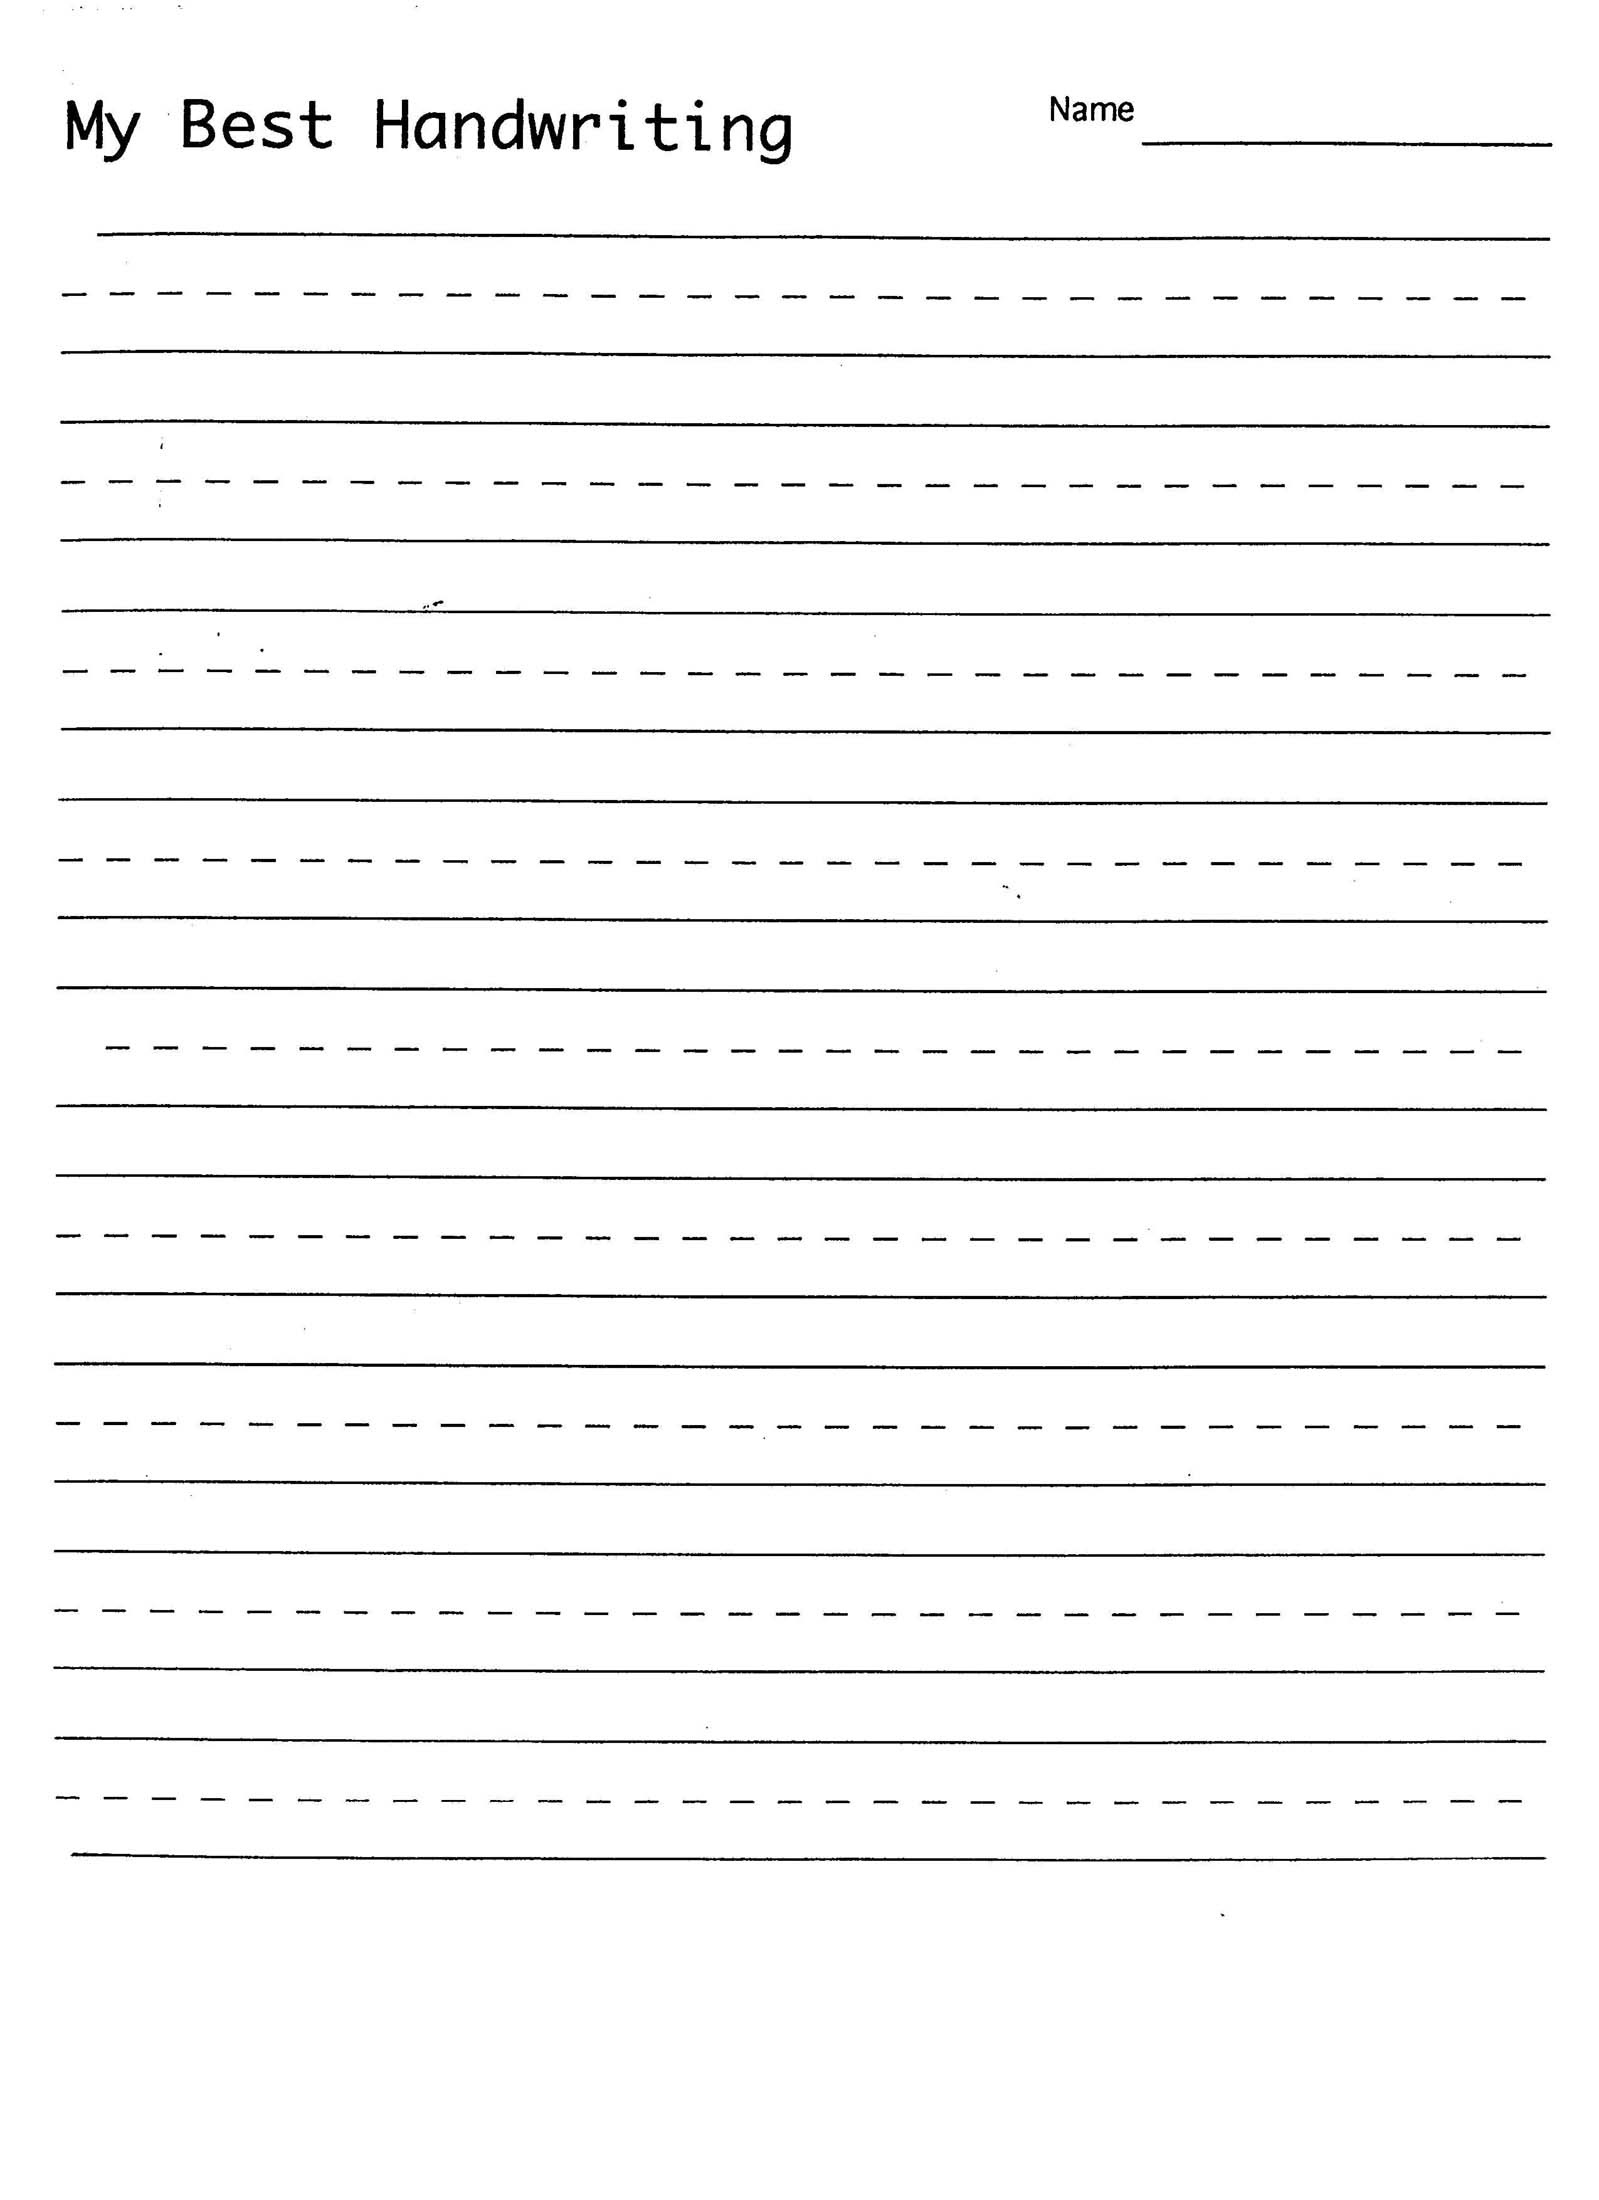 worksheet Handwritting Worksheets printing practice sheet gidiye redformapolitica co sheet